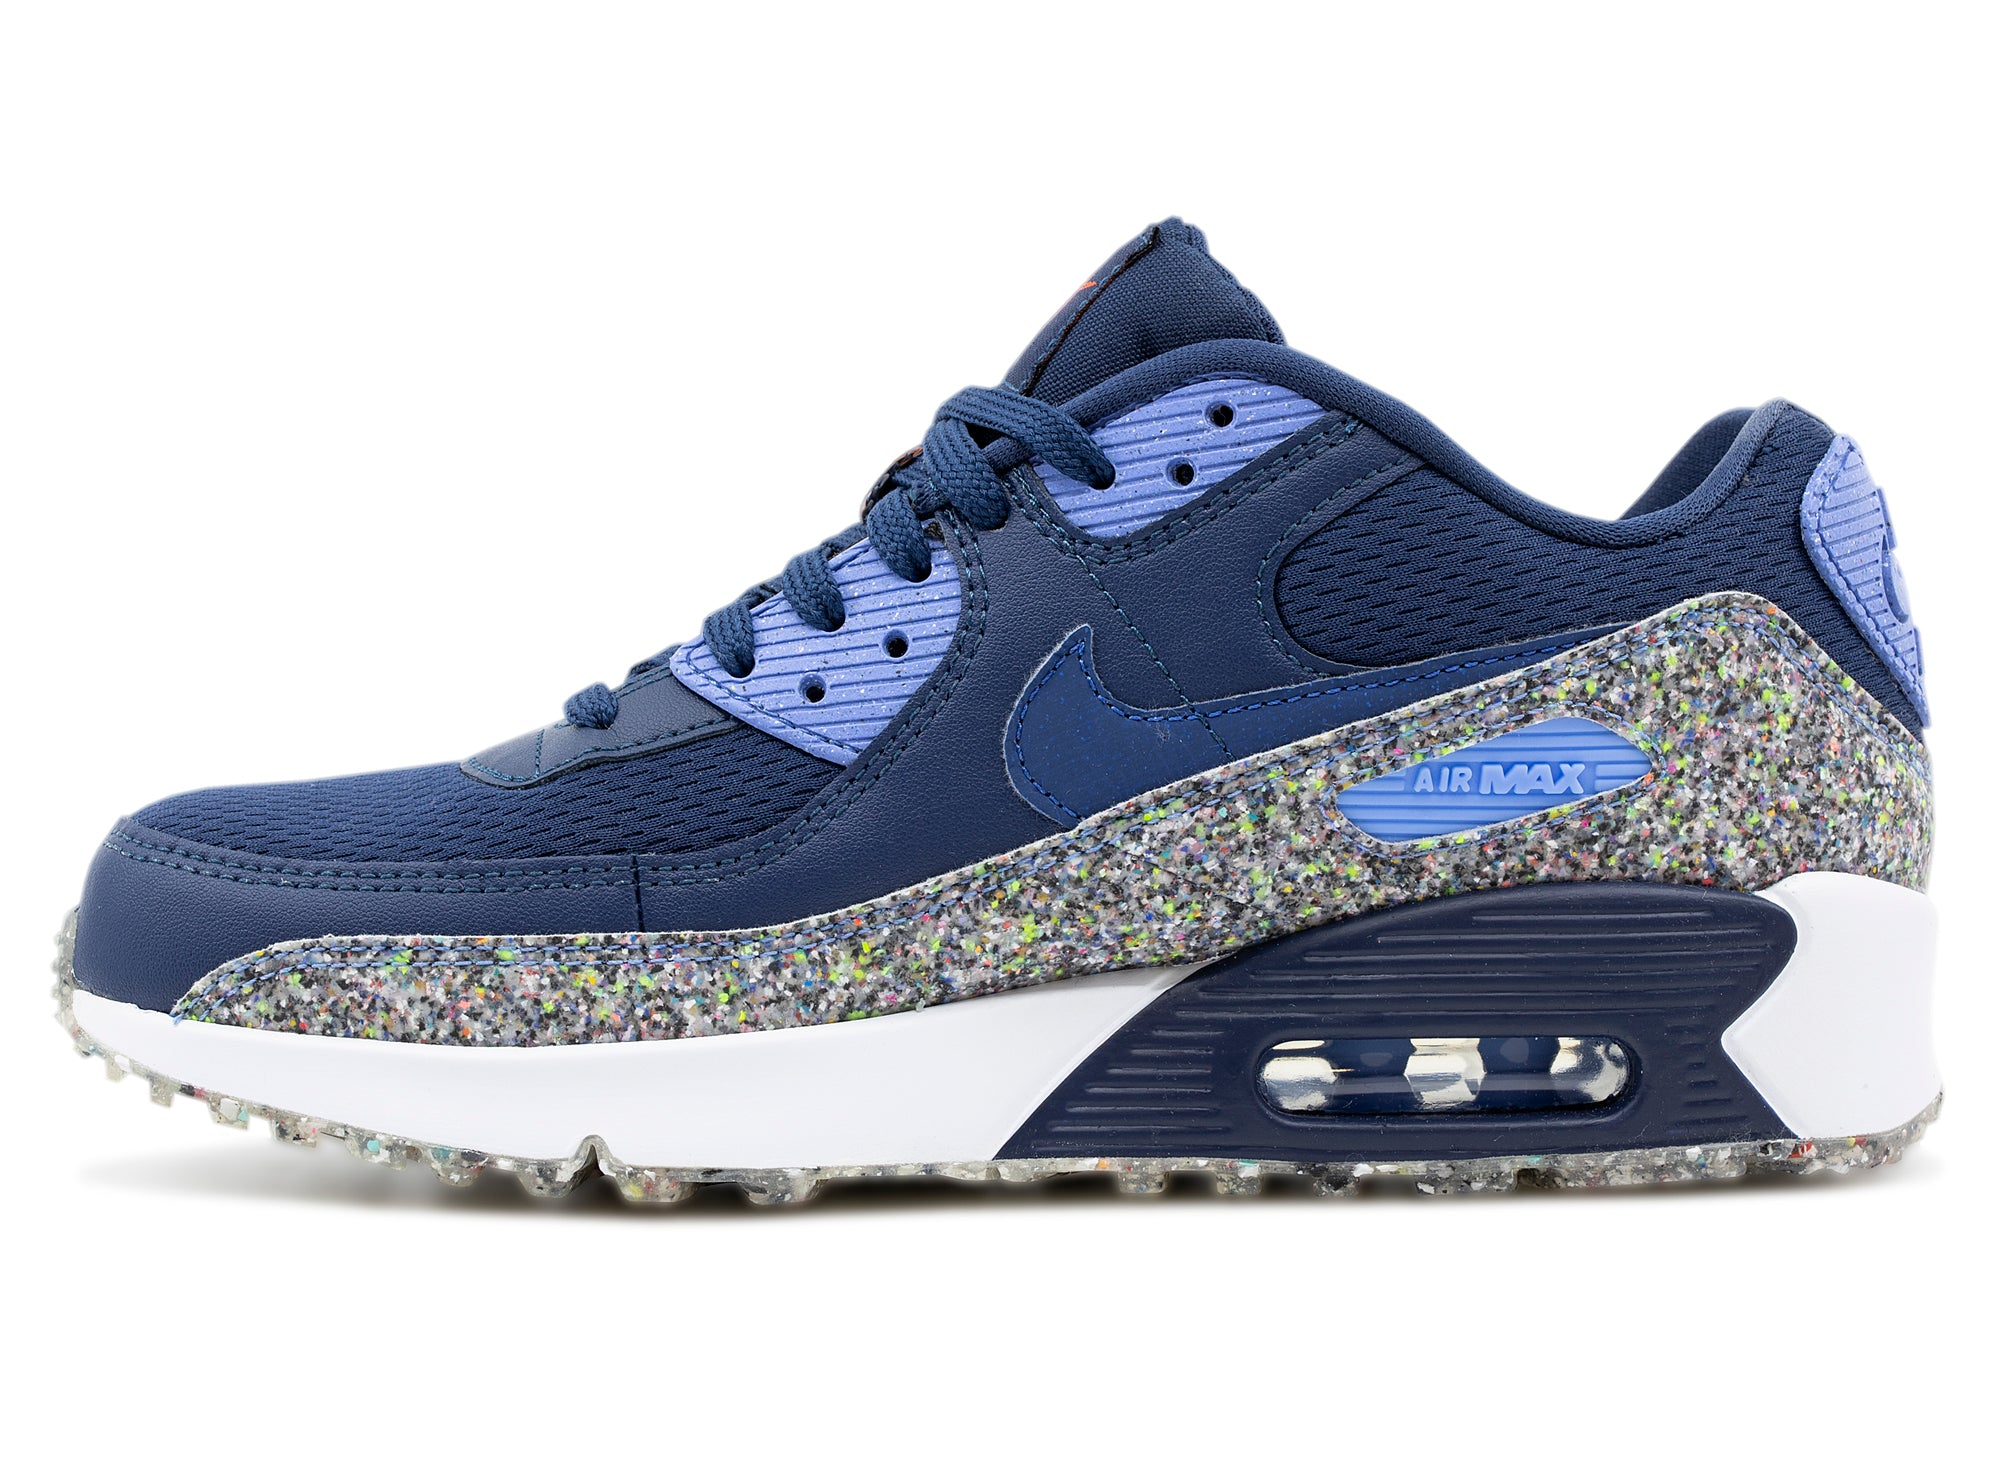 GS Nike Air Max 90 SE - Oneness Boutique